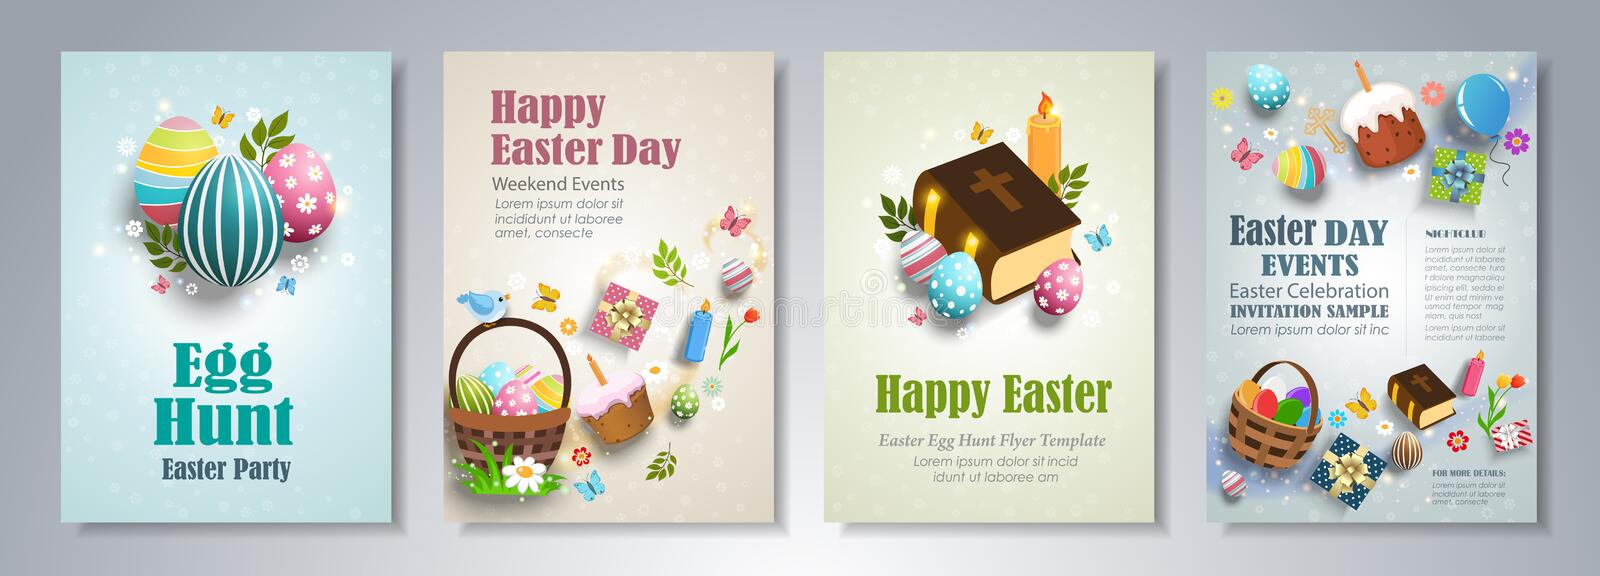 Happy easter flyer template stock vector illustration of label download happy easter flyer template stock vector illustration of label cartoon 113330072 negle Image collections